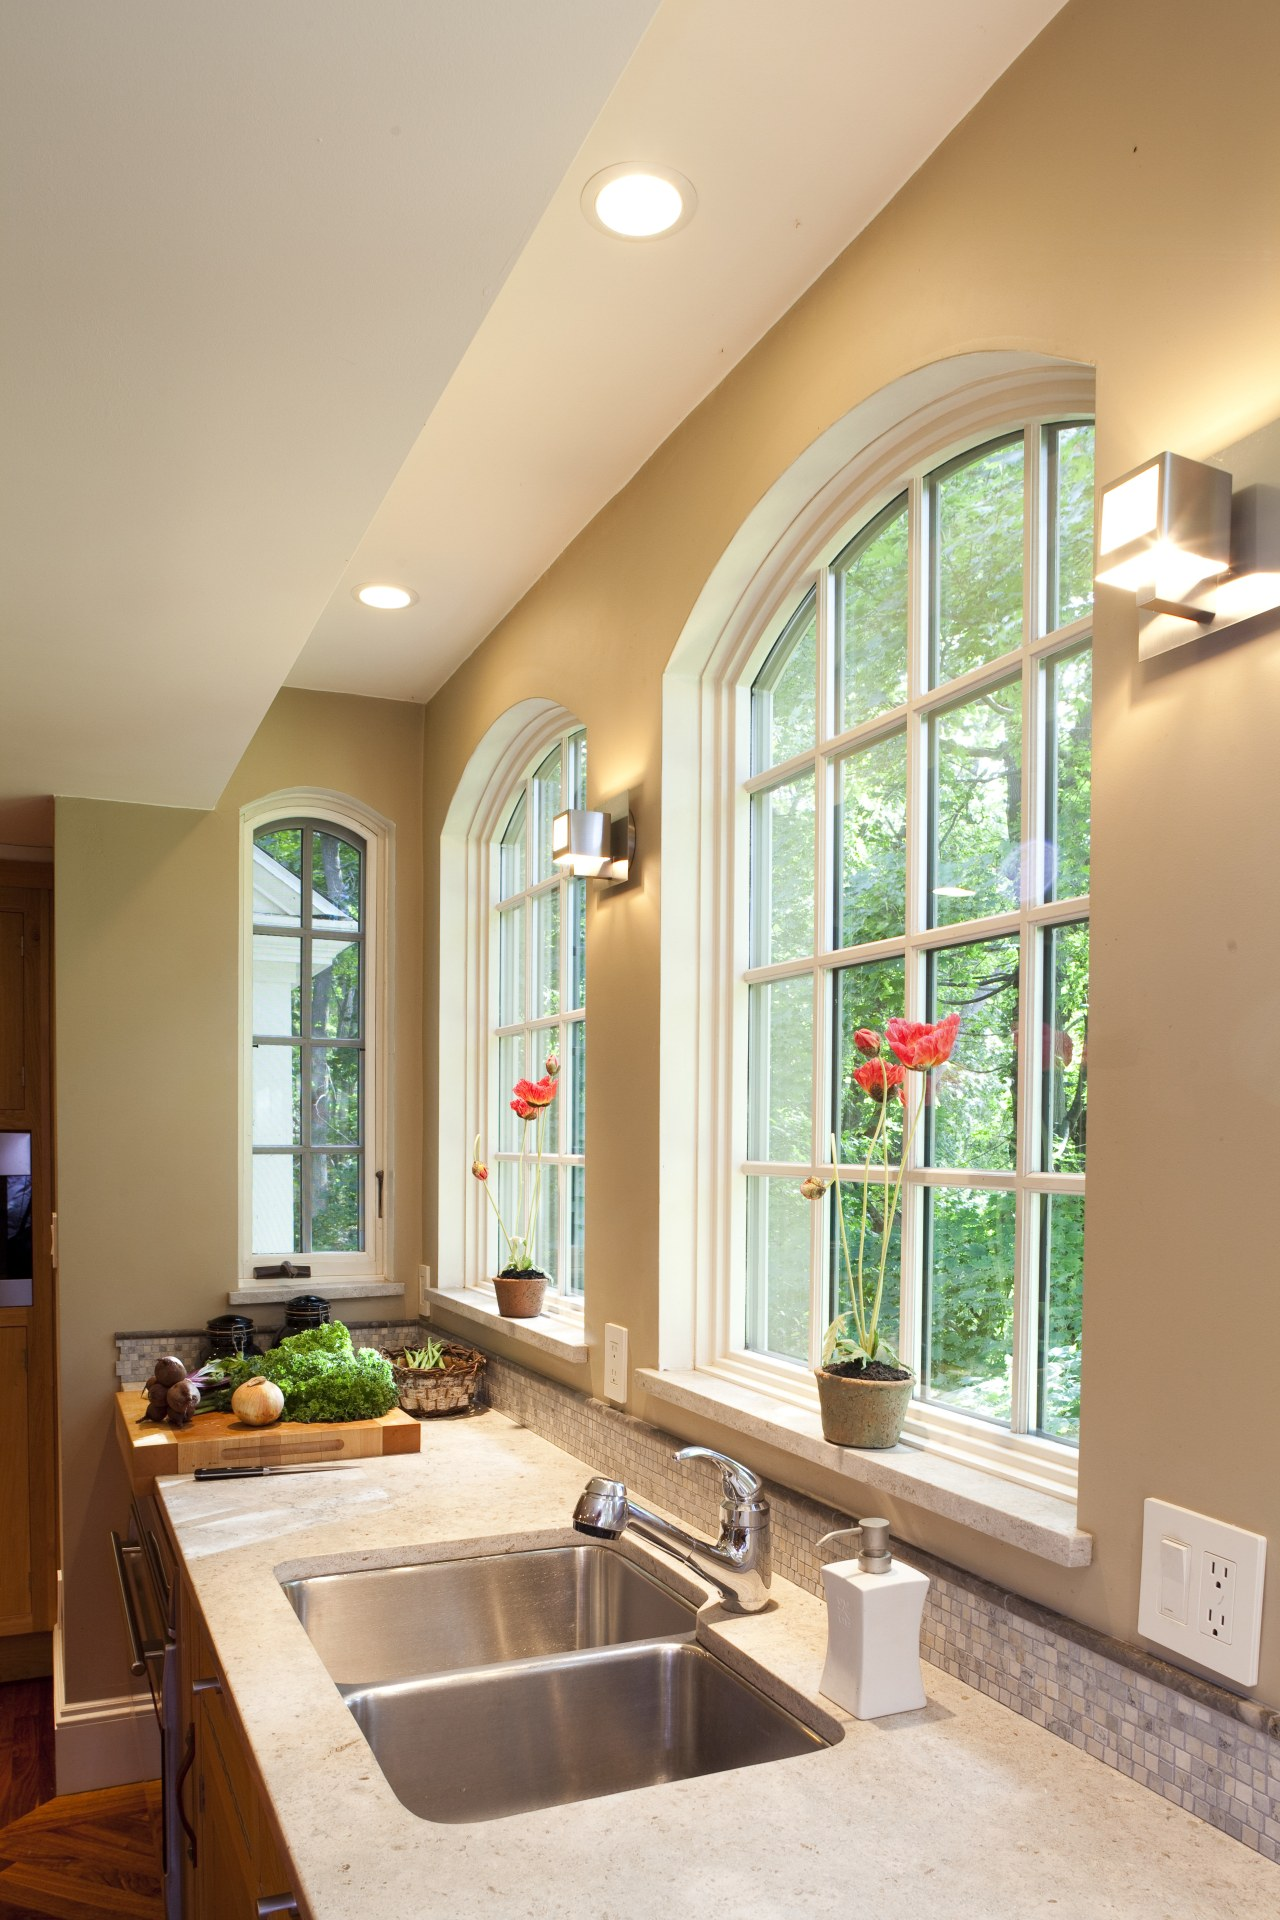 Arched windows enhance the classic appeal of this ceiling, countertop, daylighting, home, interior design, kitchen, real estate, room, window, orange